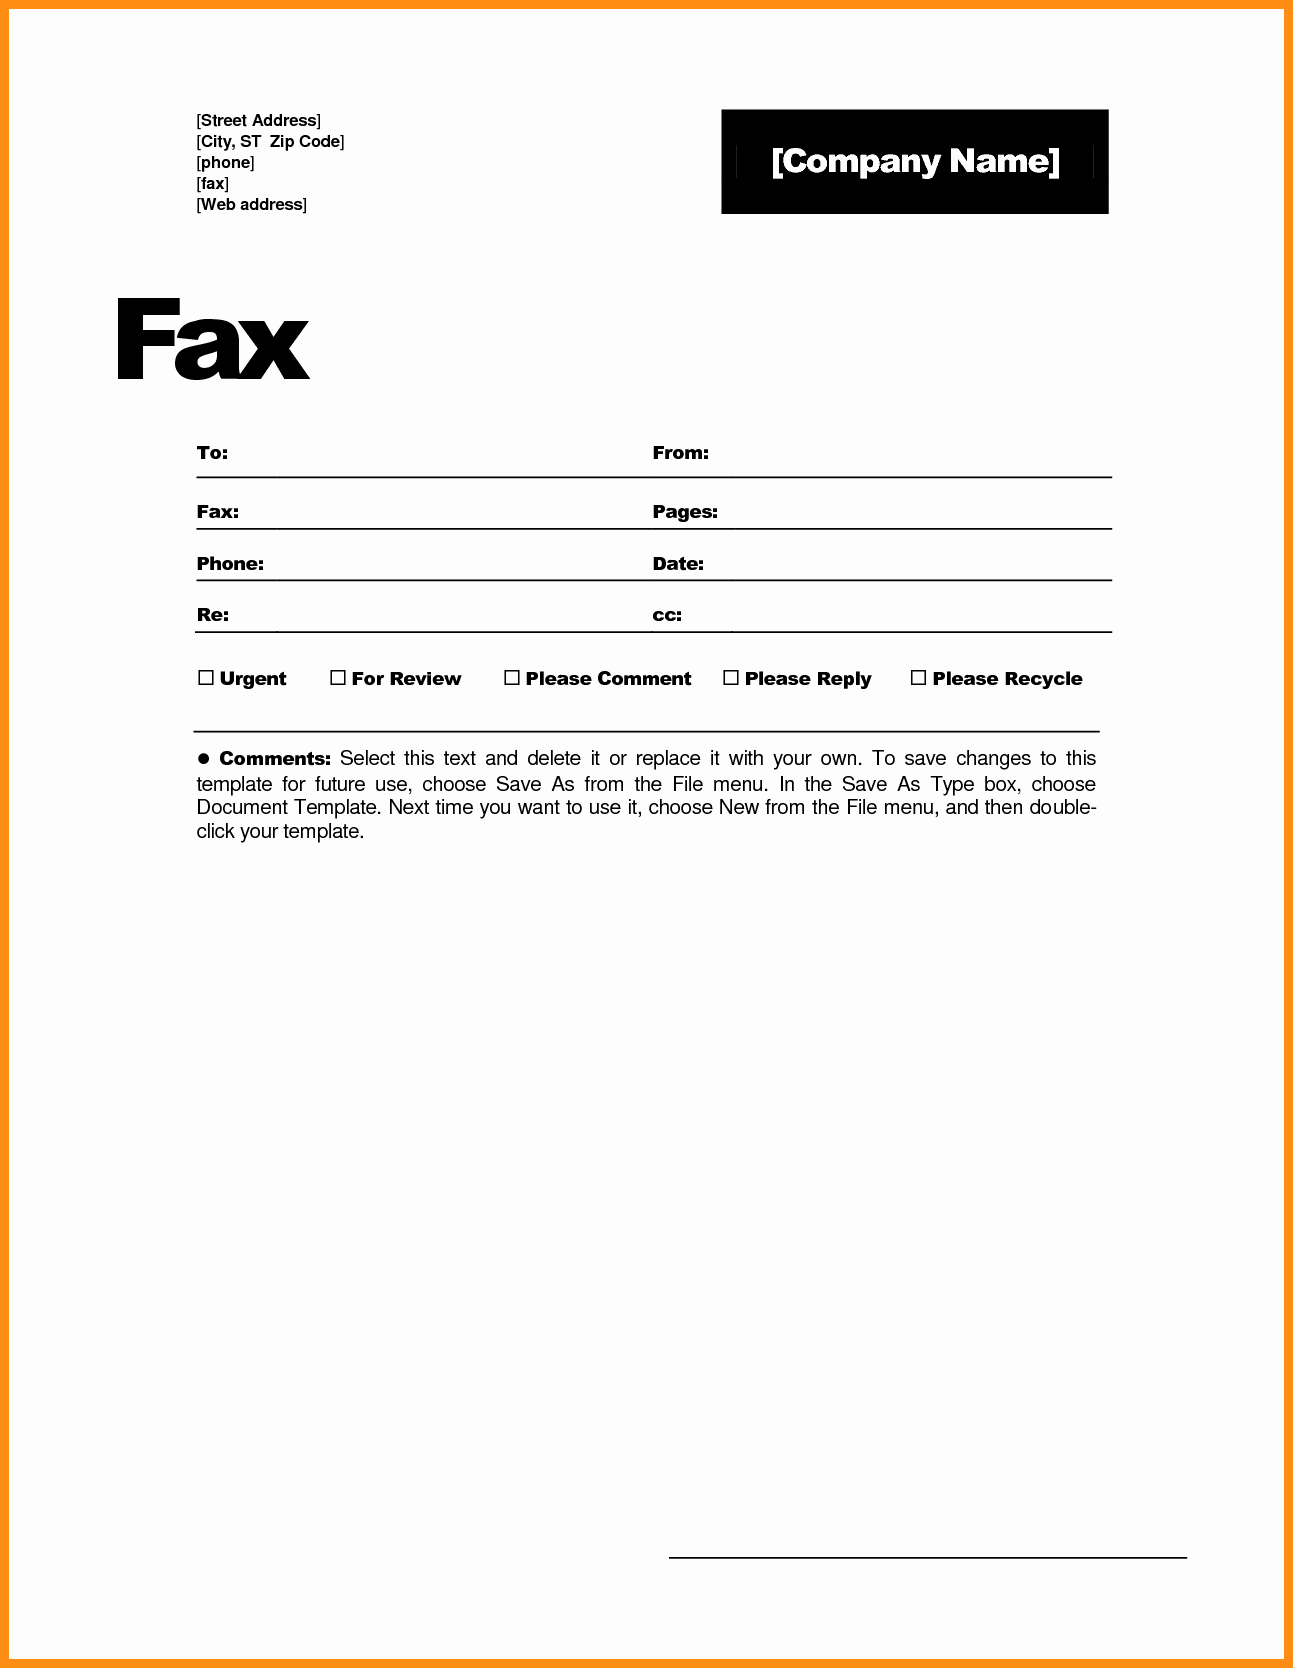 Free Fax Cover Sheets Template Best Of 6 Free Fax Cover Sheet Template Word